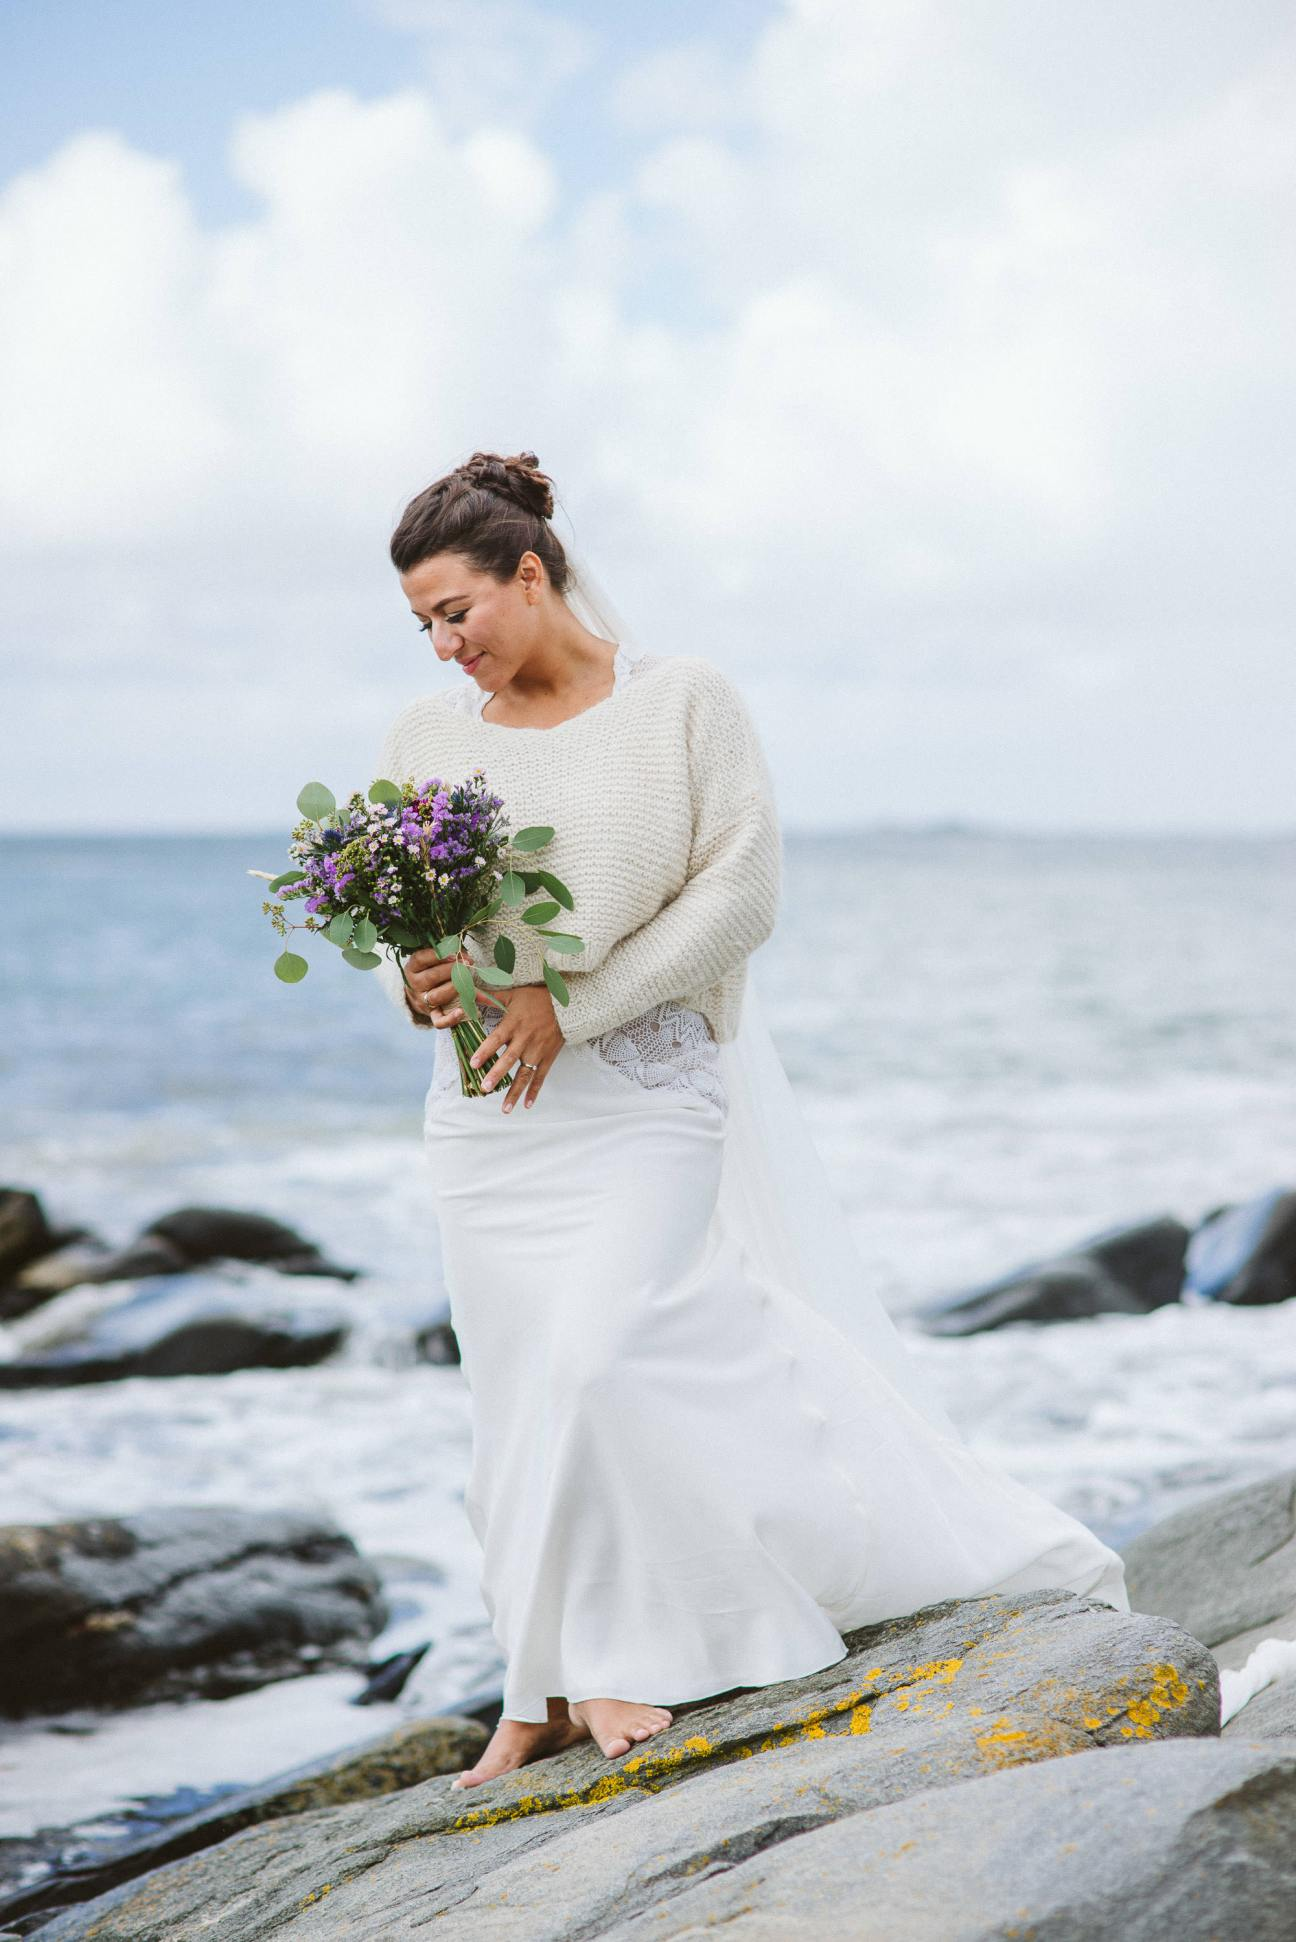 Natural bridal portrait by the sea